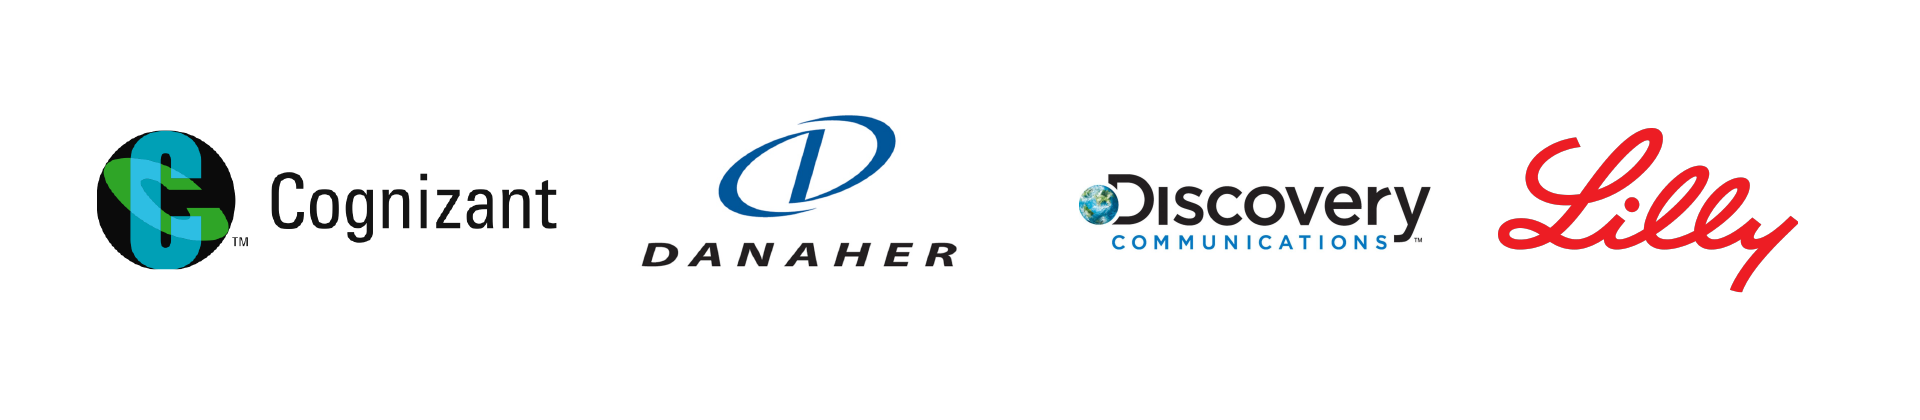 Logos for Cognizant, Danaher, Discovery Communications and Lilly